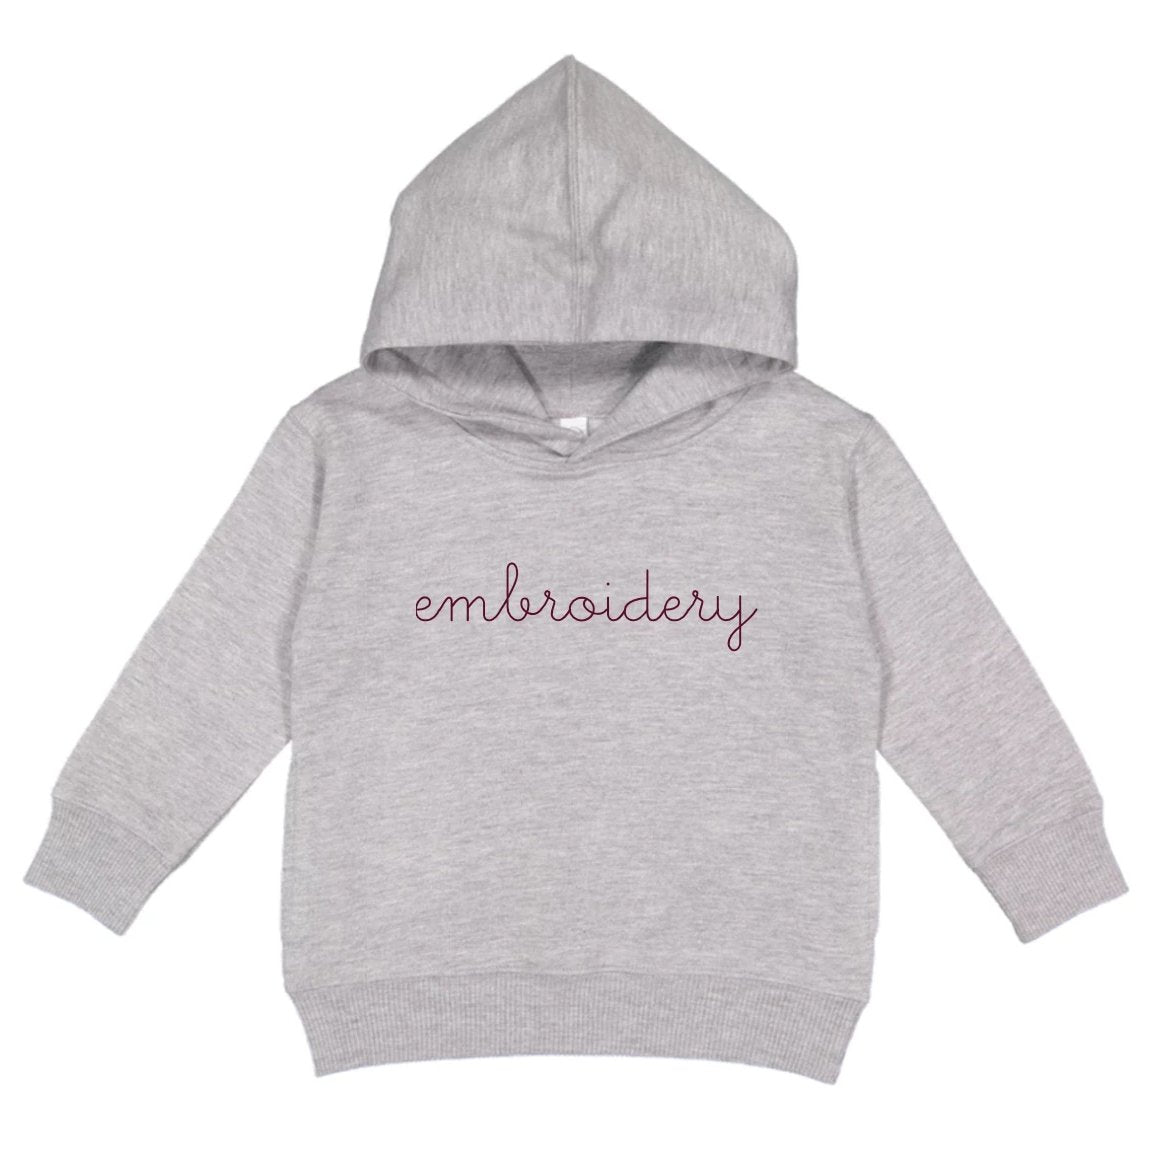 Little Kids Classic Pullover Hoodie juju + stitch 2T / Heather Gray custom personalized script embroidered pullover hoodie kids